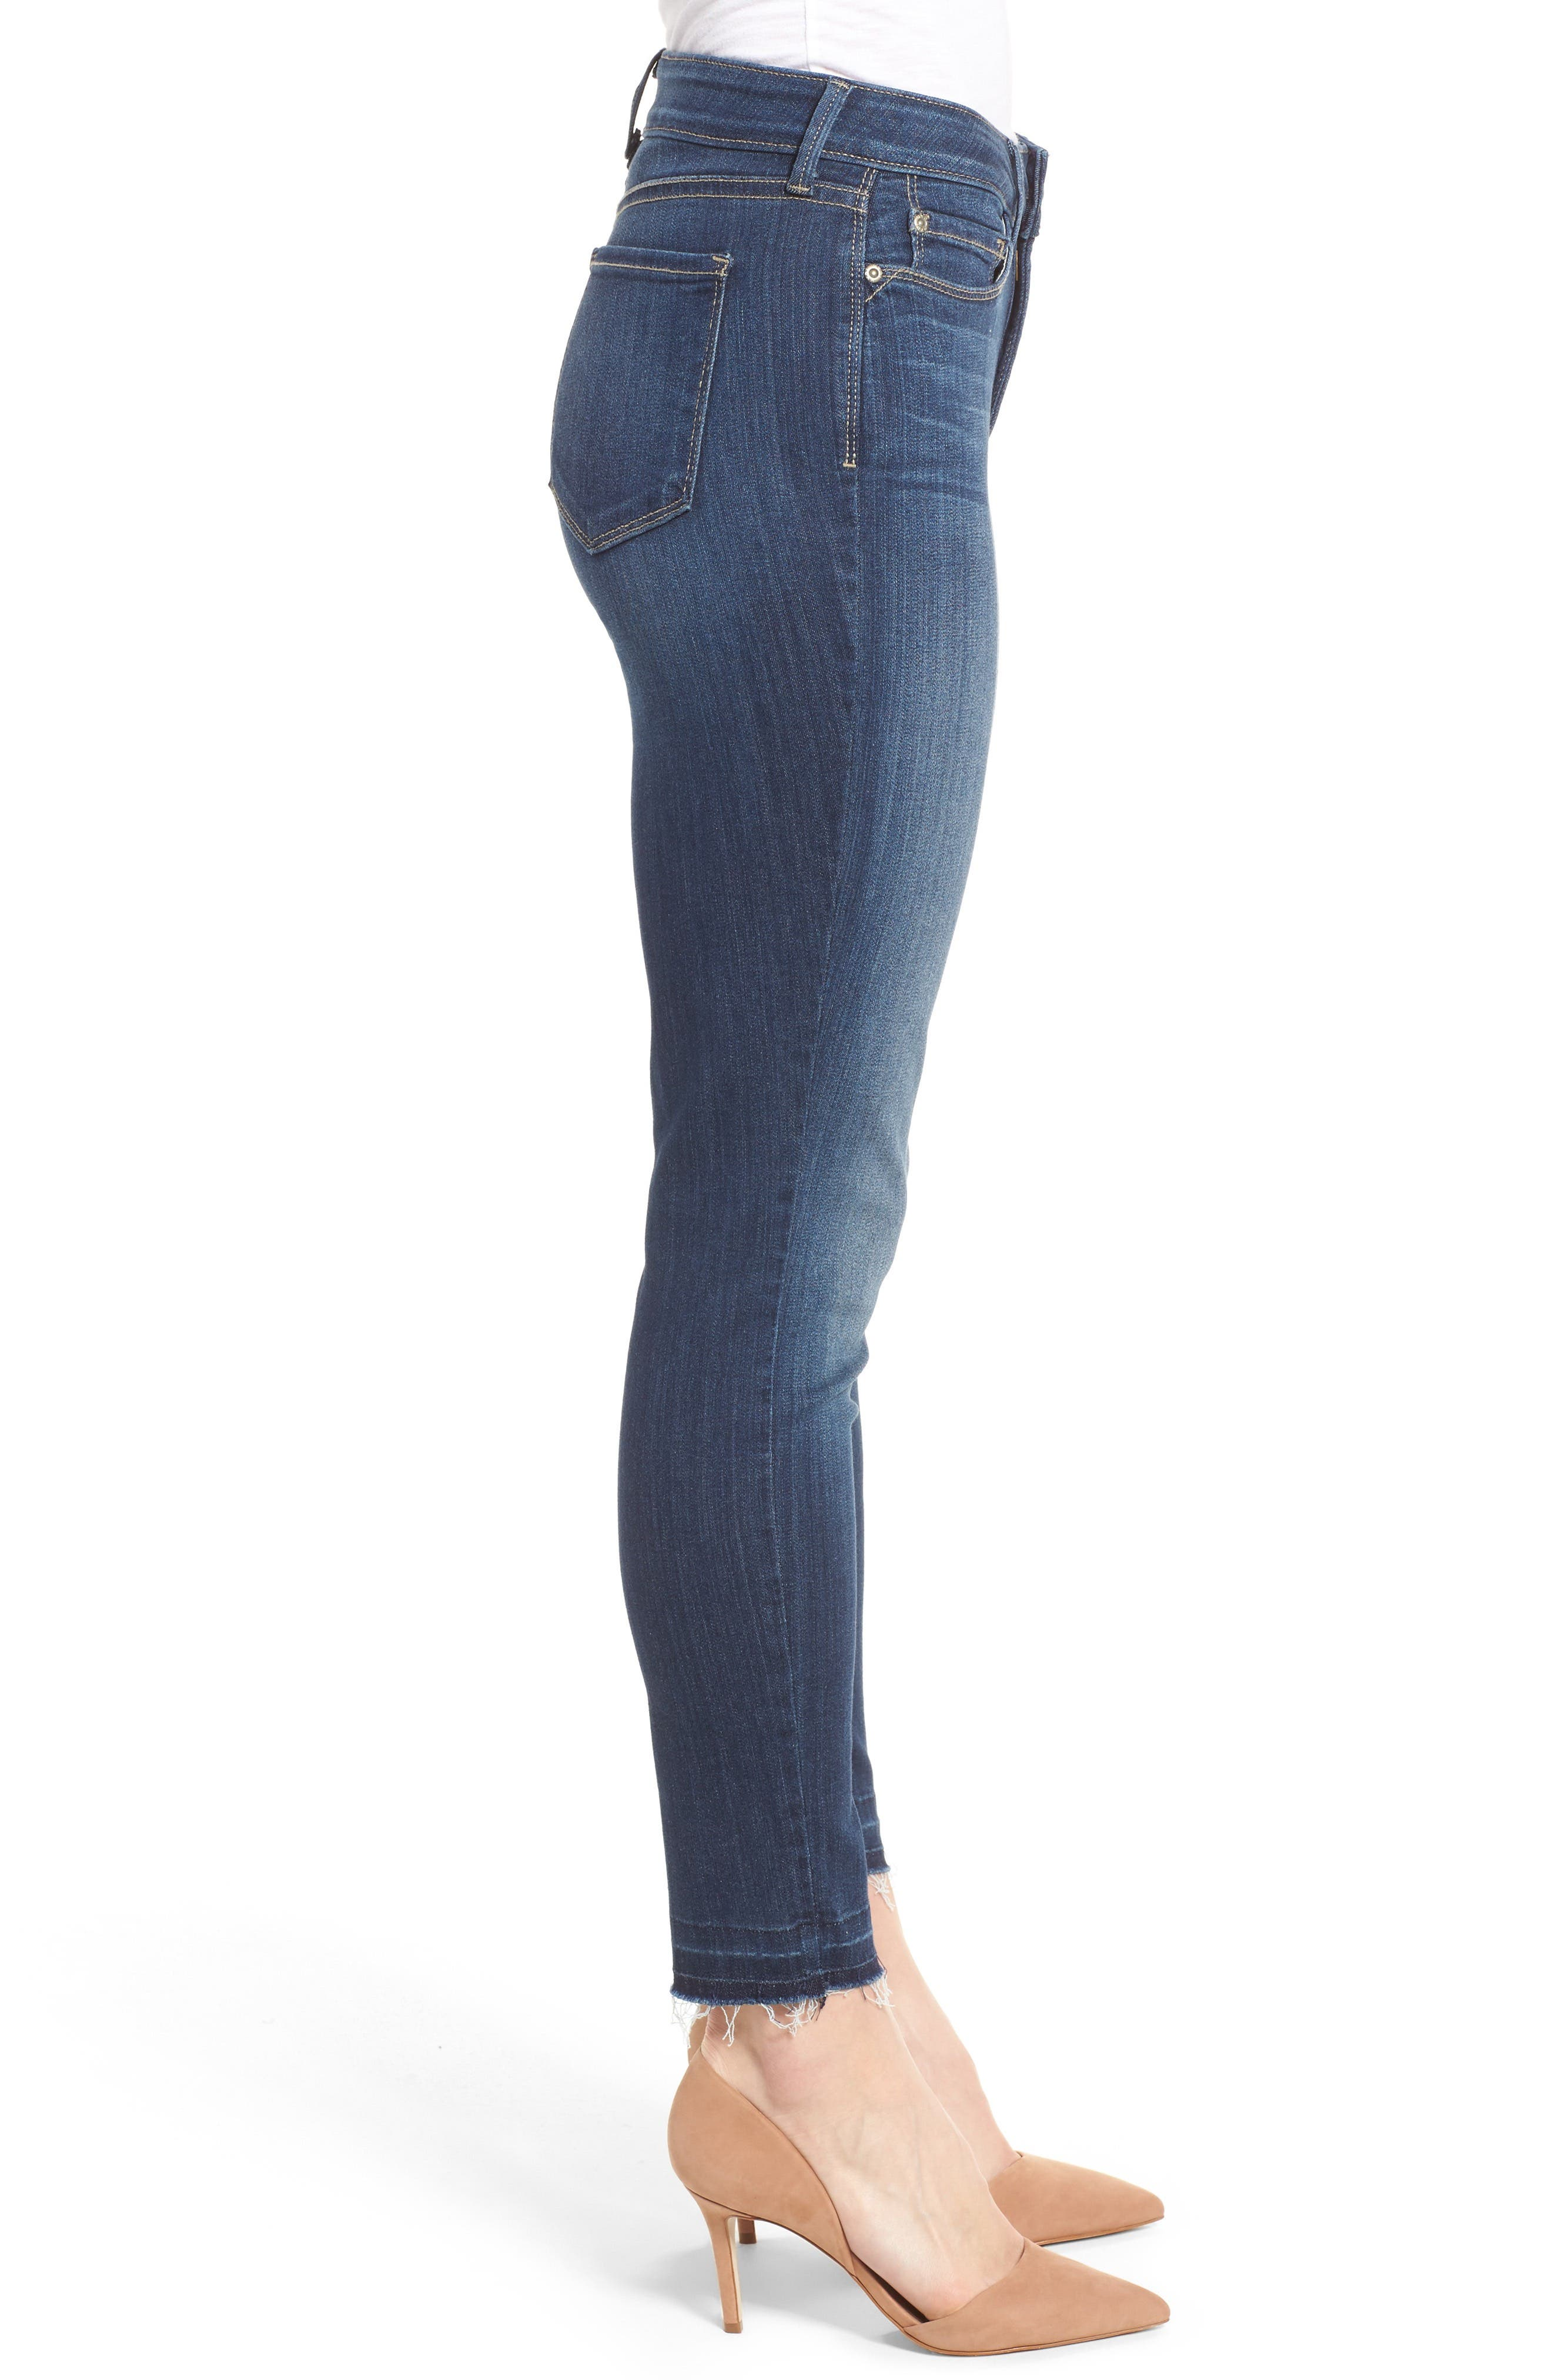 Ami Release Hem Stretch Skinny Jeans,                             Alternate thumbnail 3, color,                             428